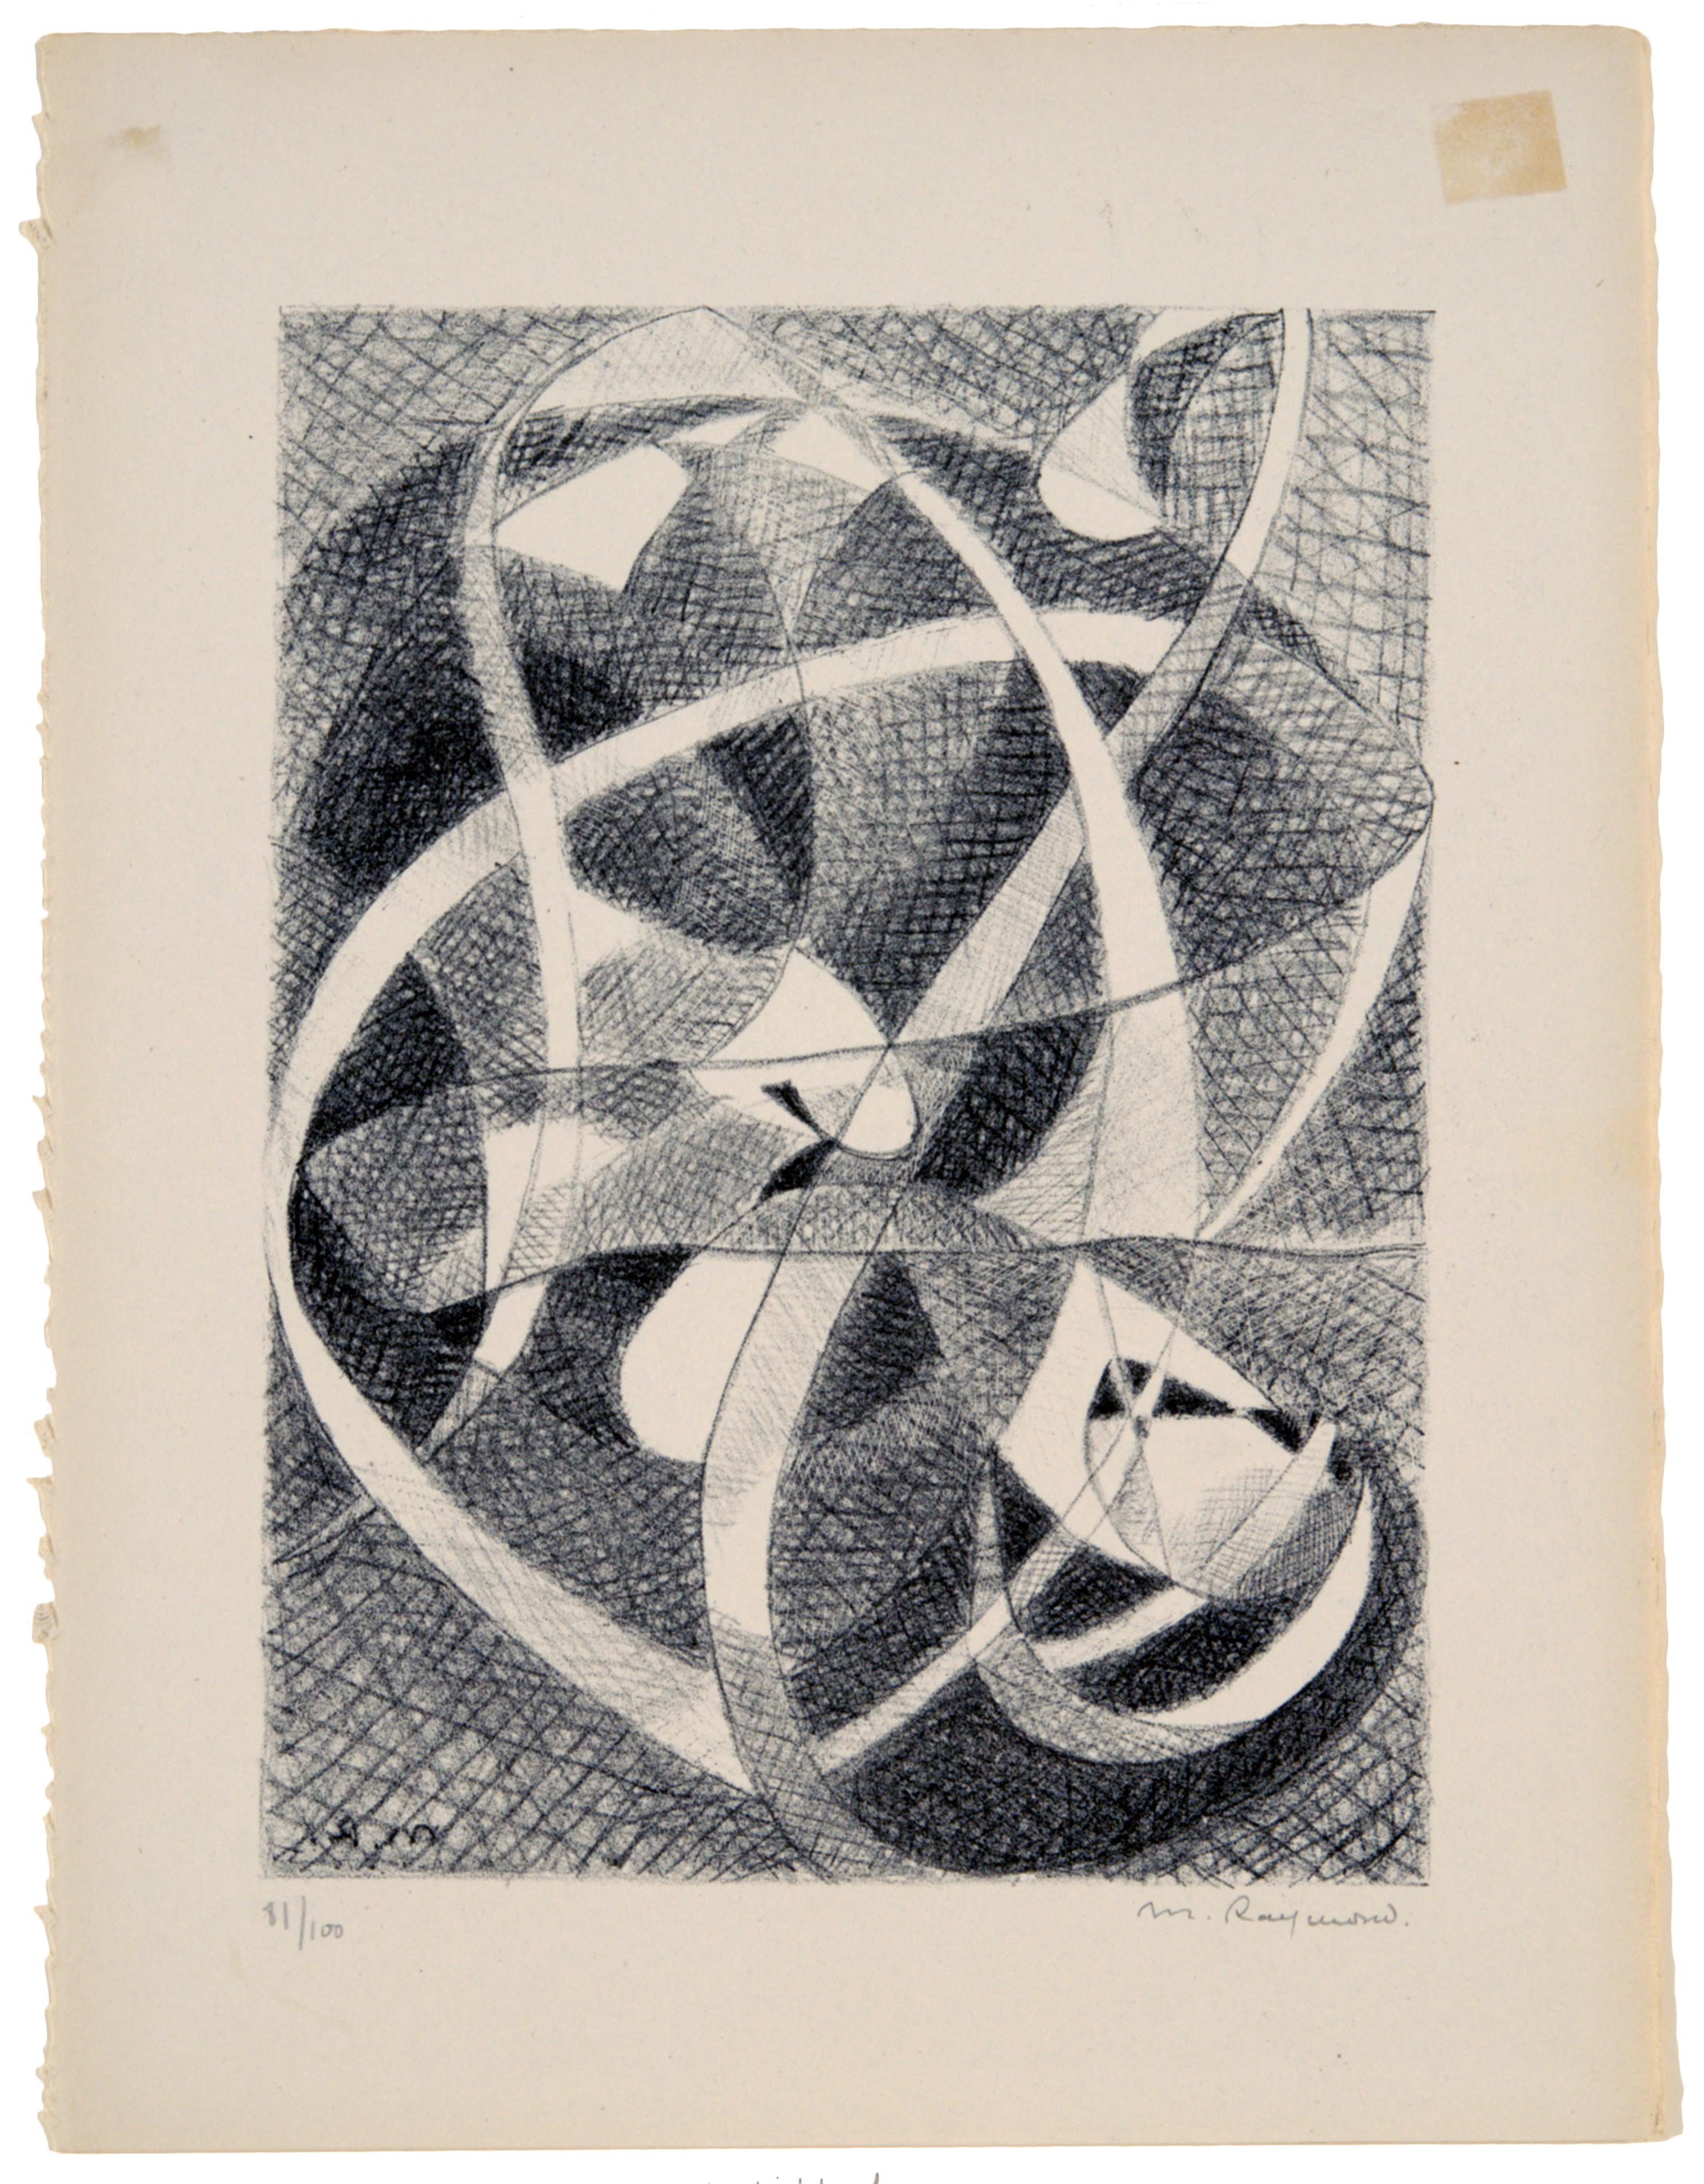 Marie Raymond, Composition, 1946